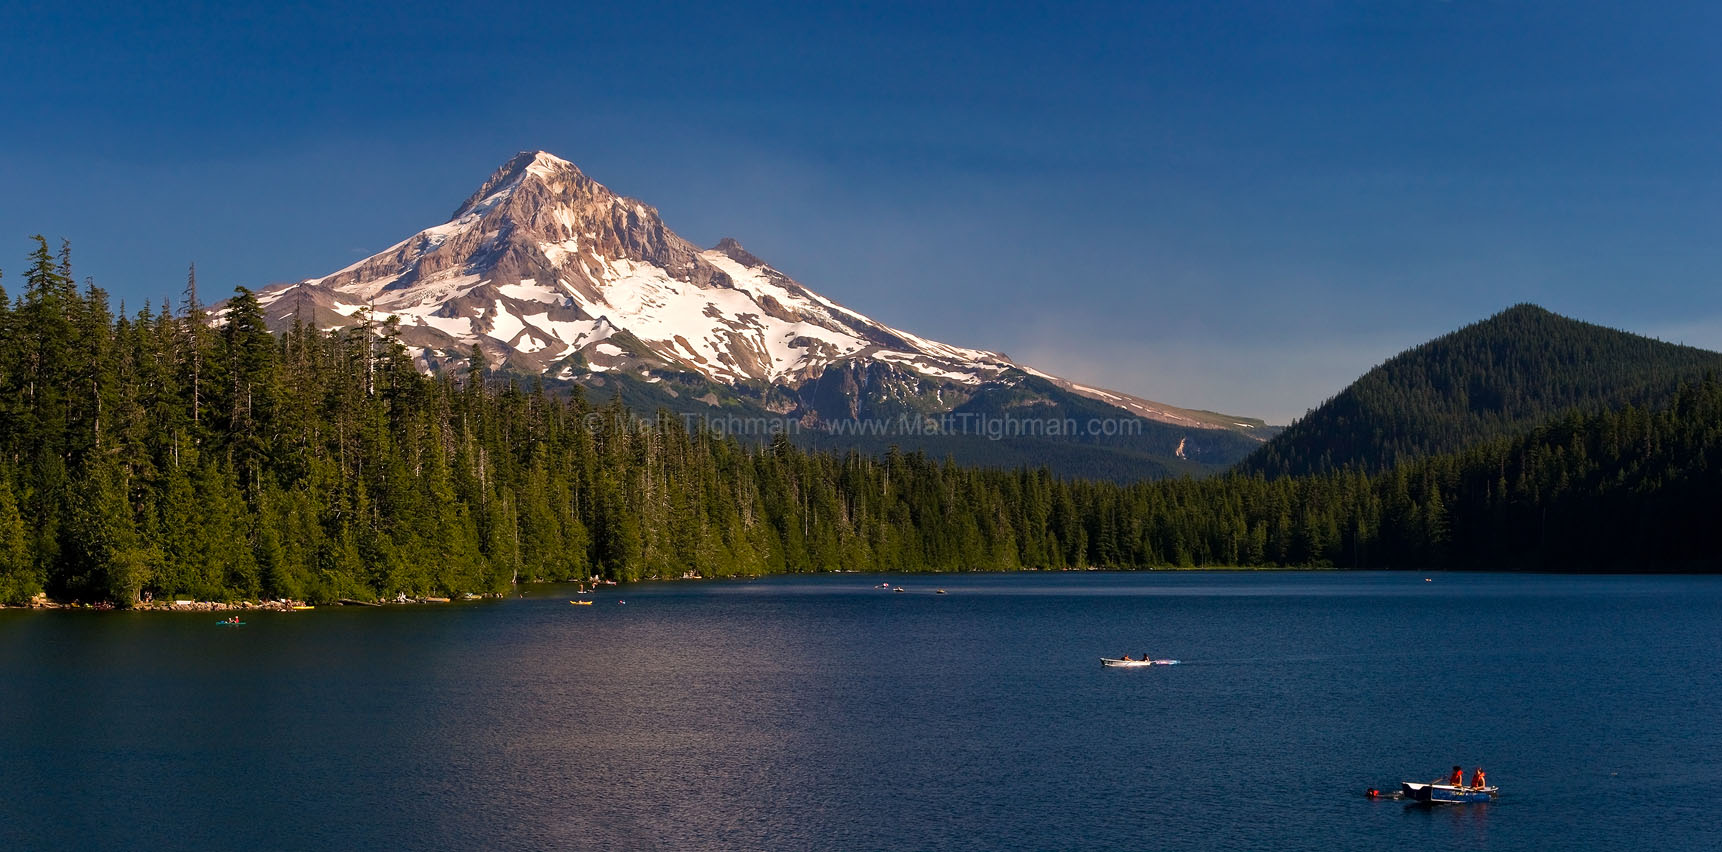 Fine art stock landscape photograph of Lost Lake, Oregon, and Mount Hood. On a hot summer day, the locals come en masse to enjoy the beautiful mountain lake.